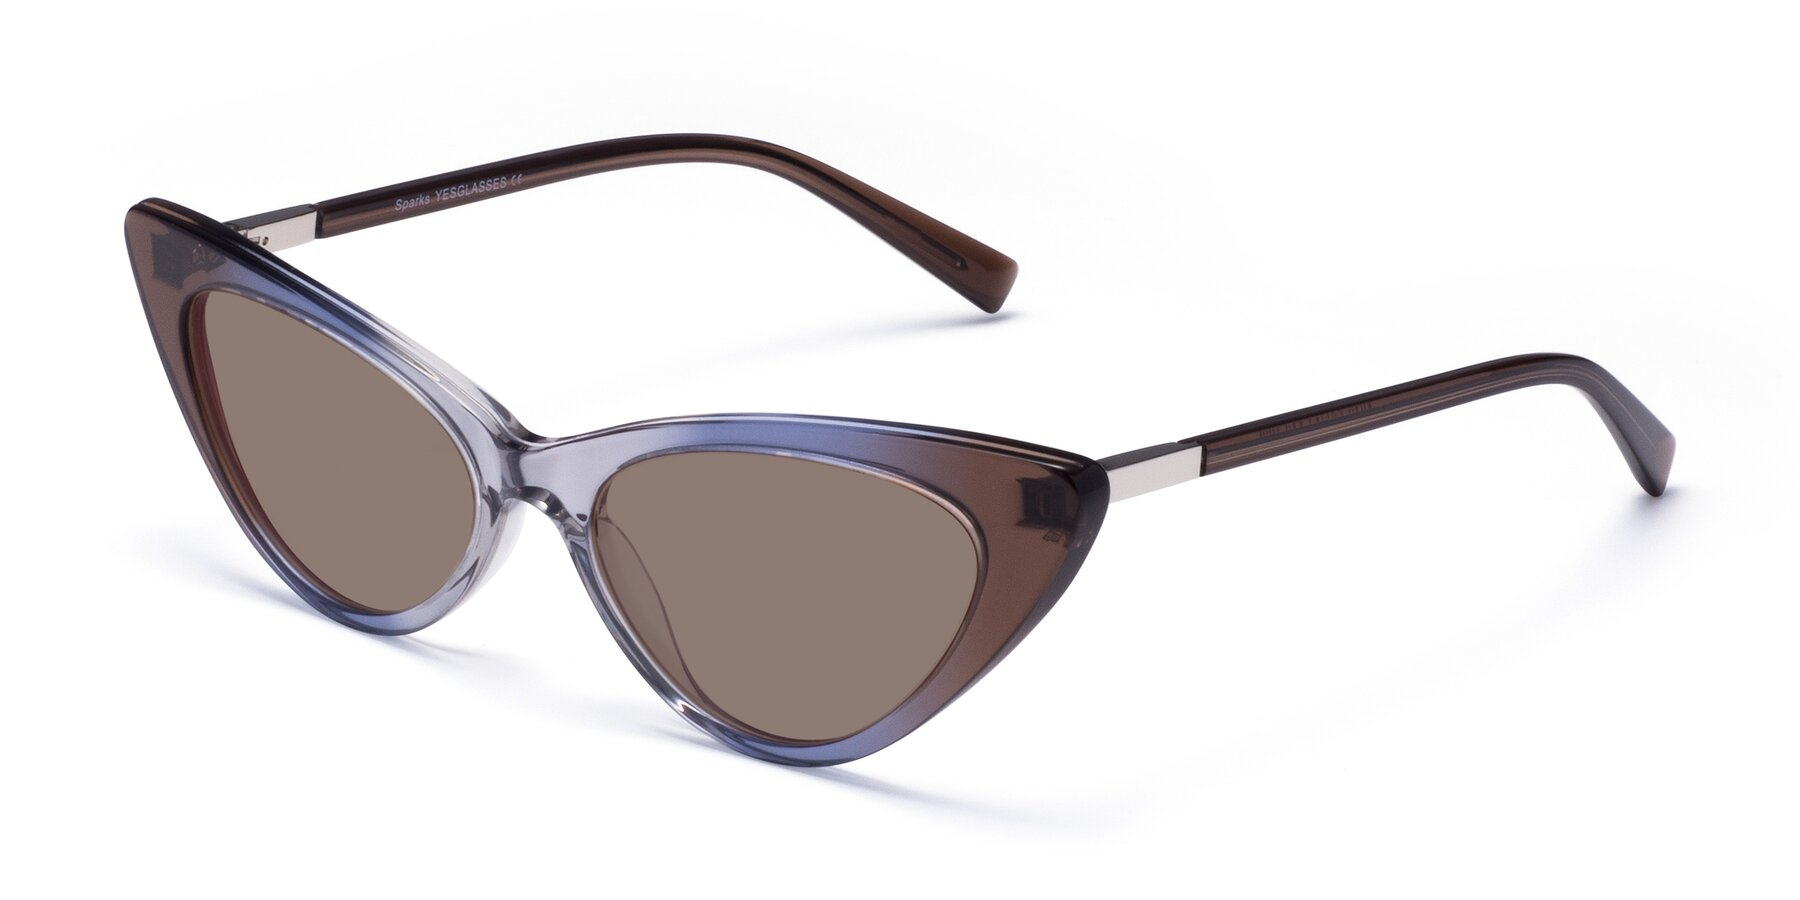 Angle of Sparks in Transparent Gradient Brown with Medium Brown Tinted Lenses